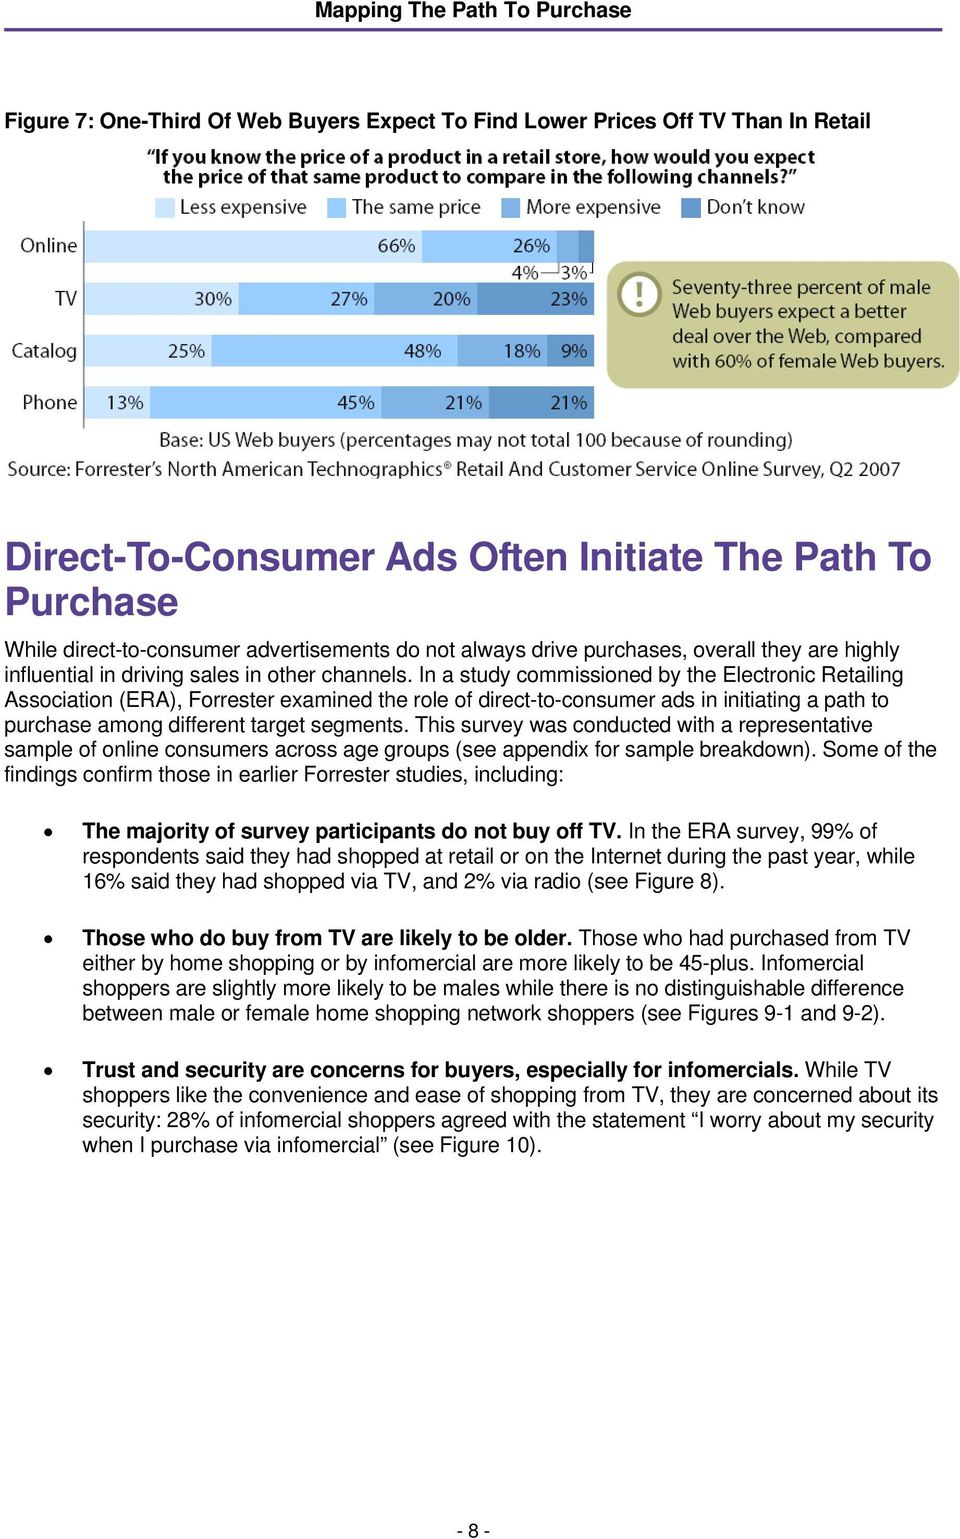 In a study commissioned by the Electronic Retailing Association (ERA), Forrester examined the role of direct-to-consumer ads in initiating a path to purchase among different target segments.